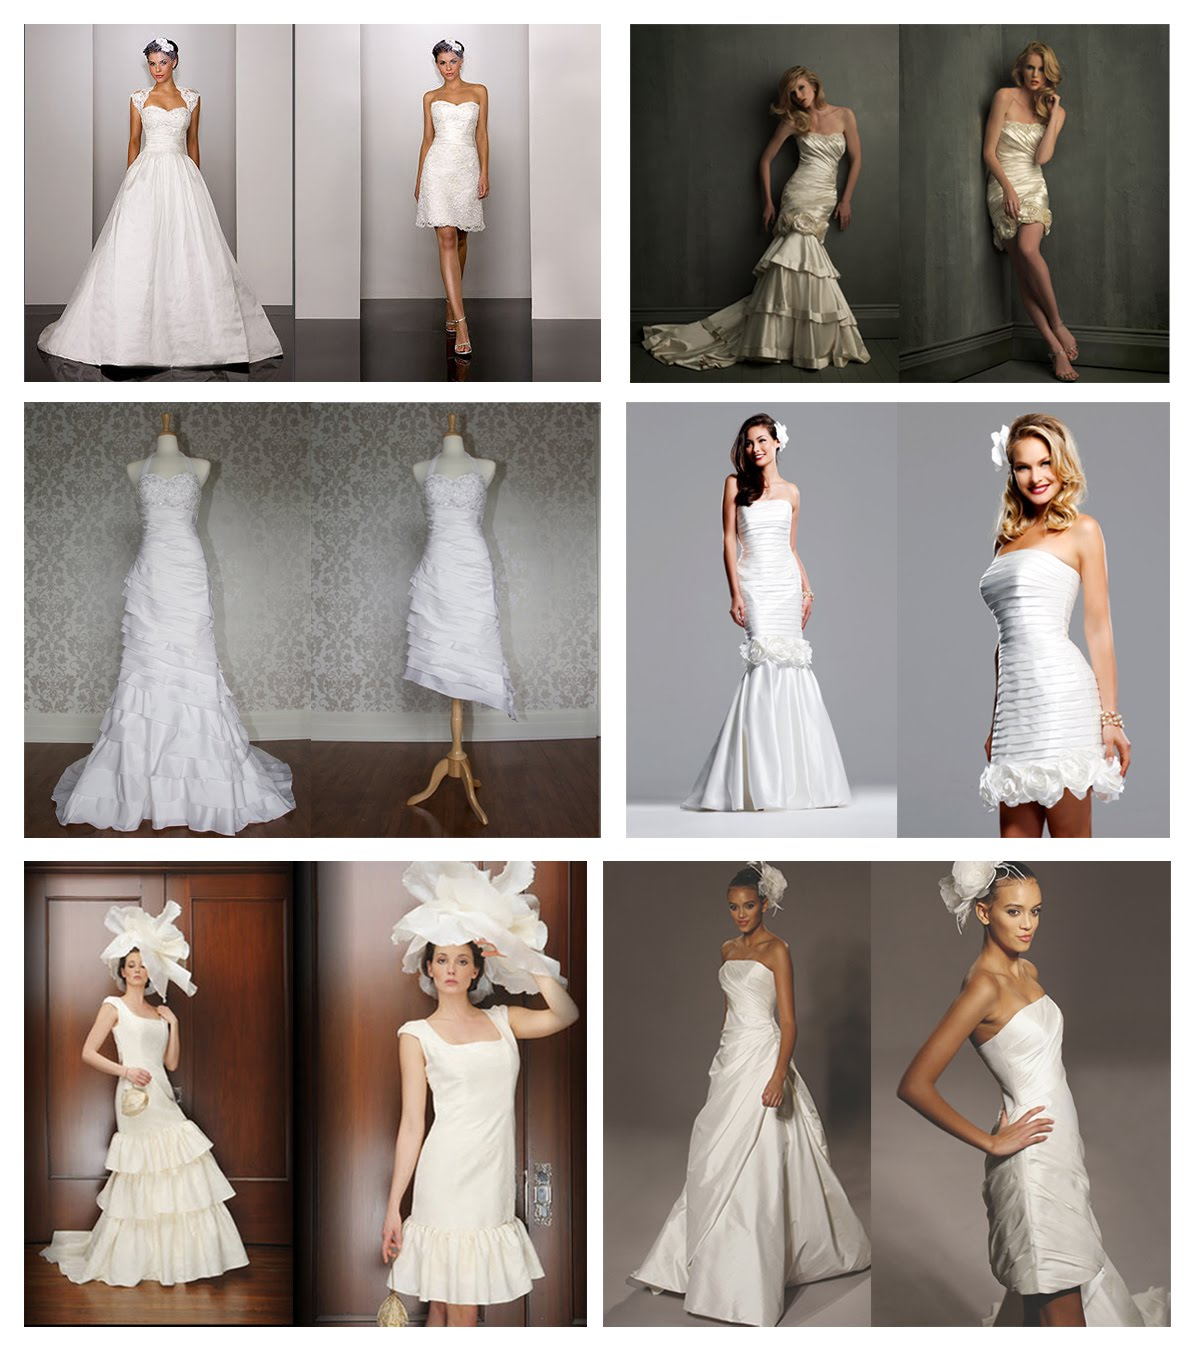 Brideindream Convertible Wedding Dresses A Good Choice For You